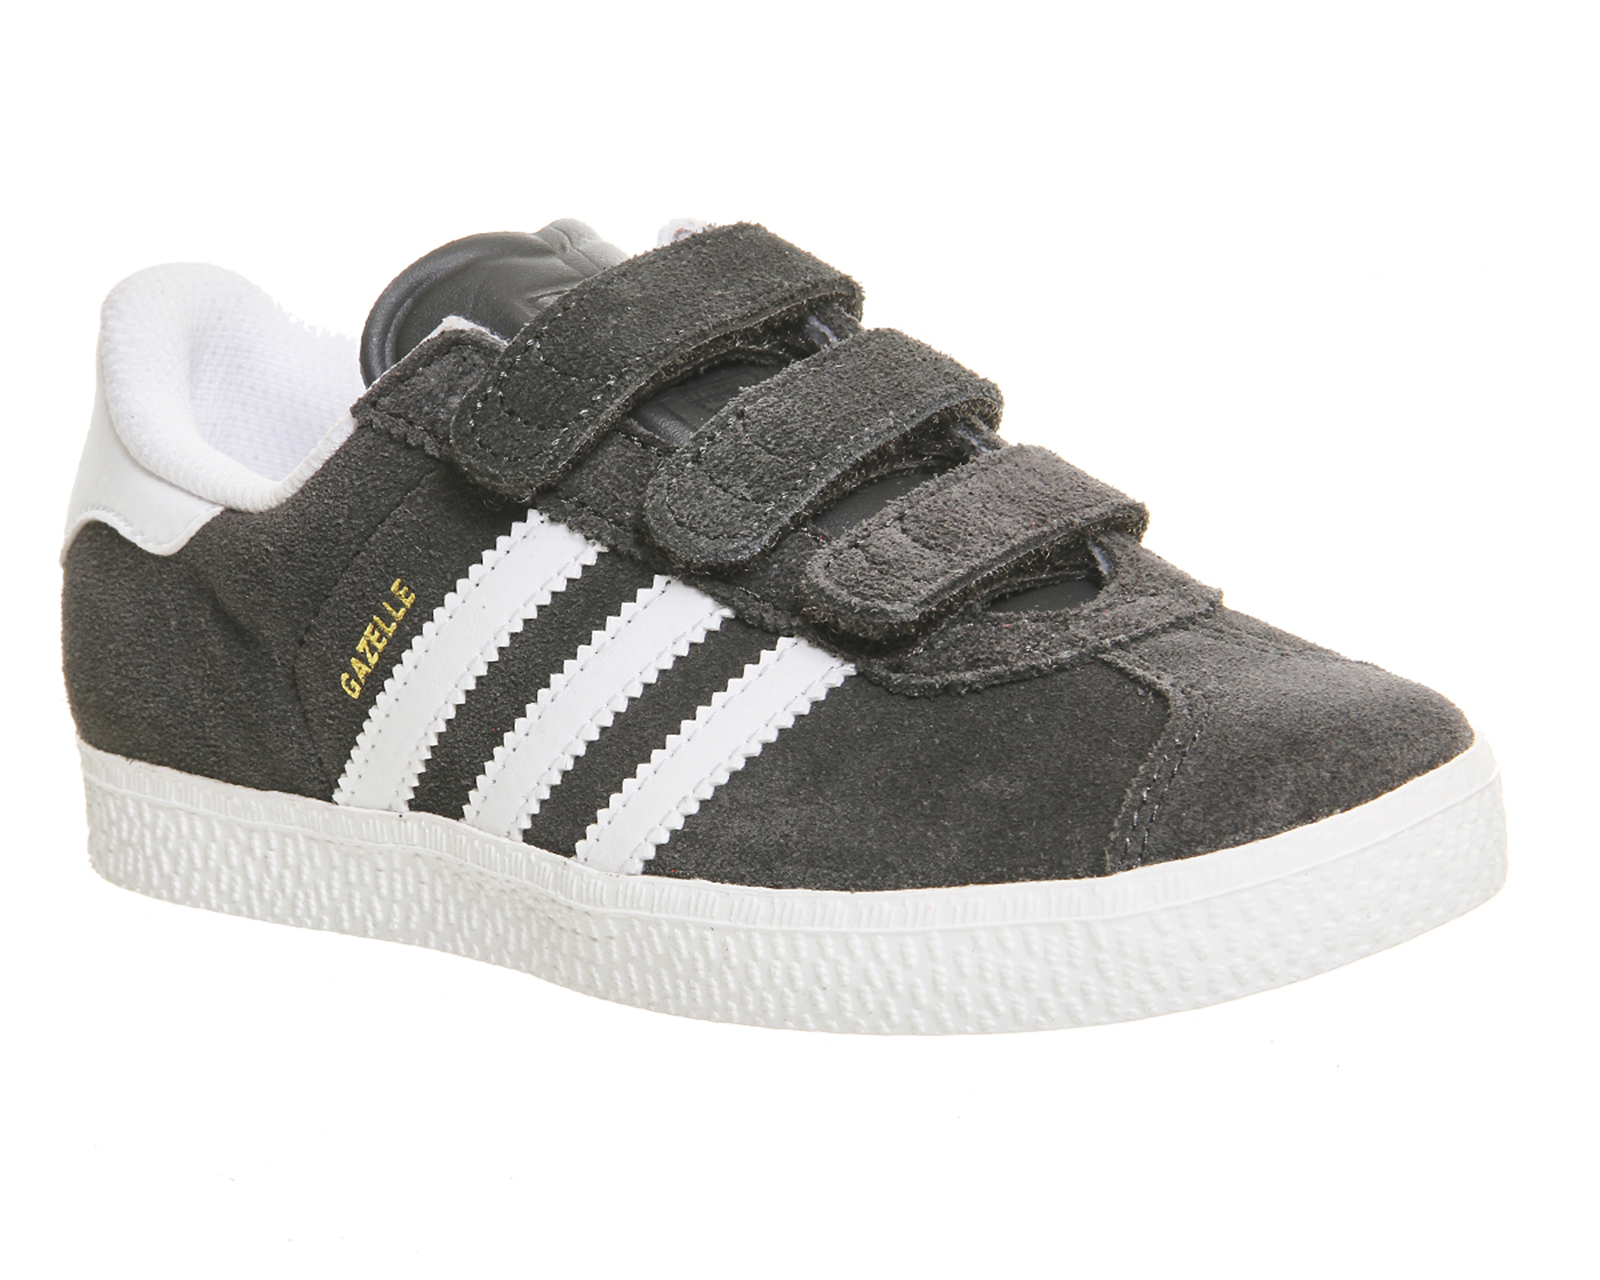 adidas gazelle childrens